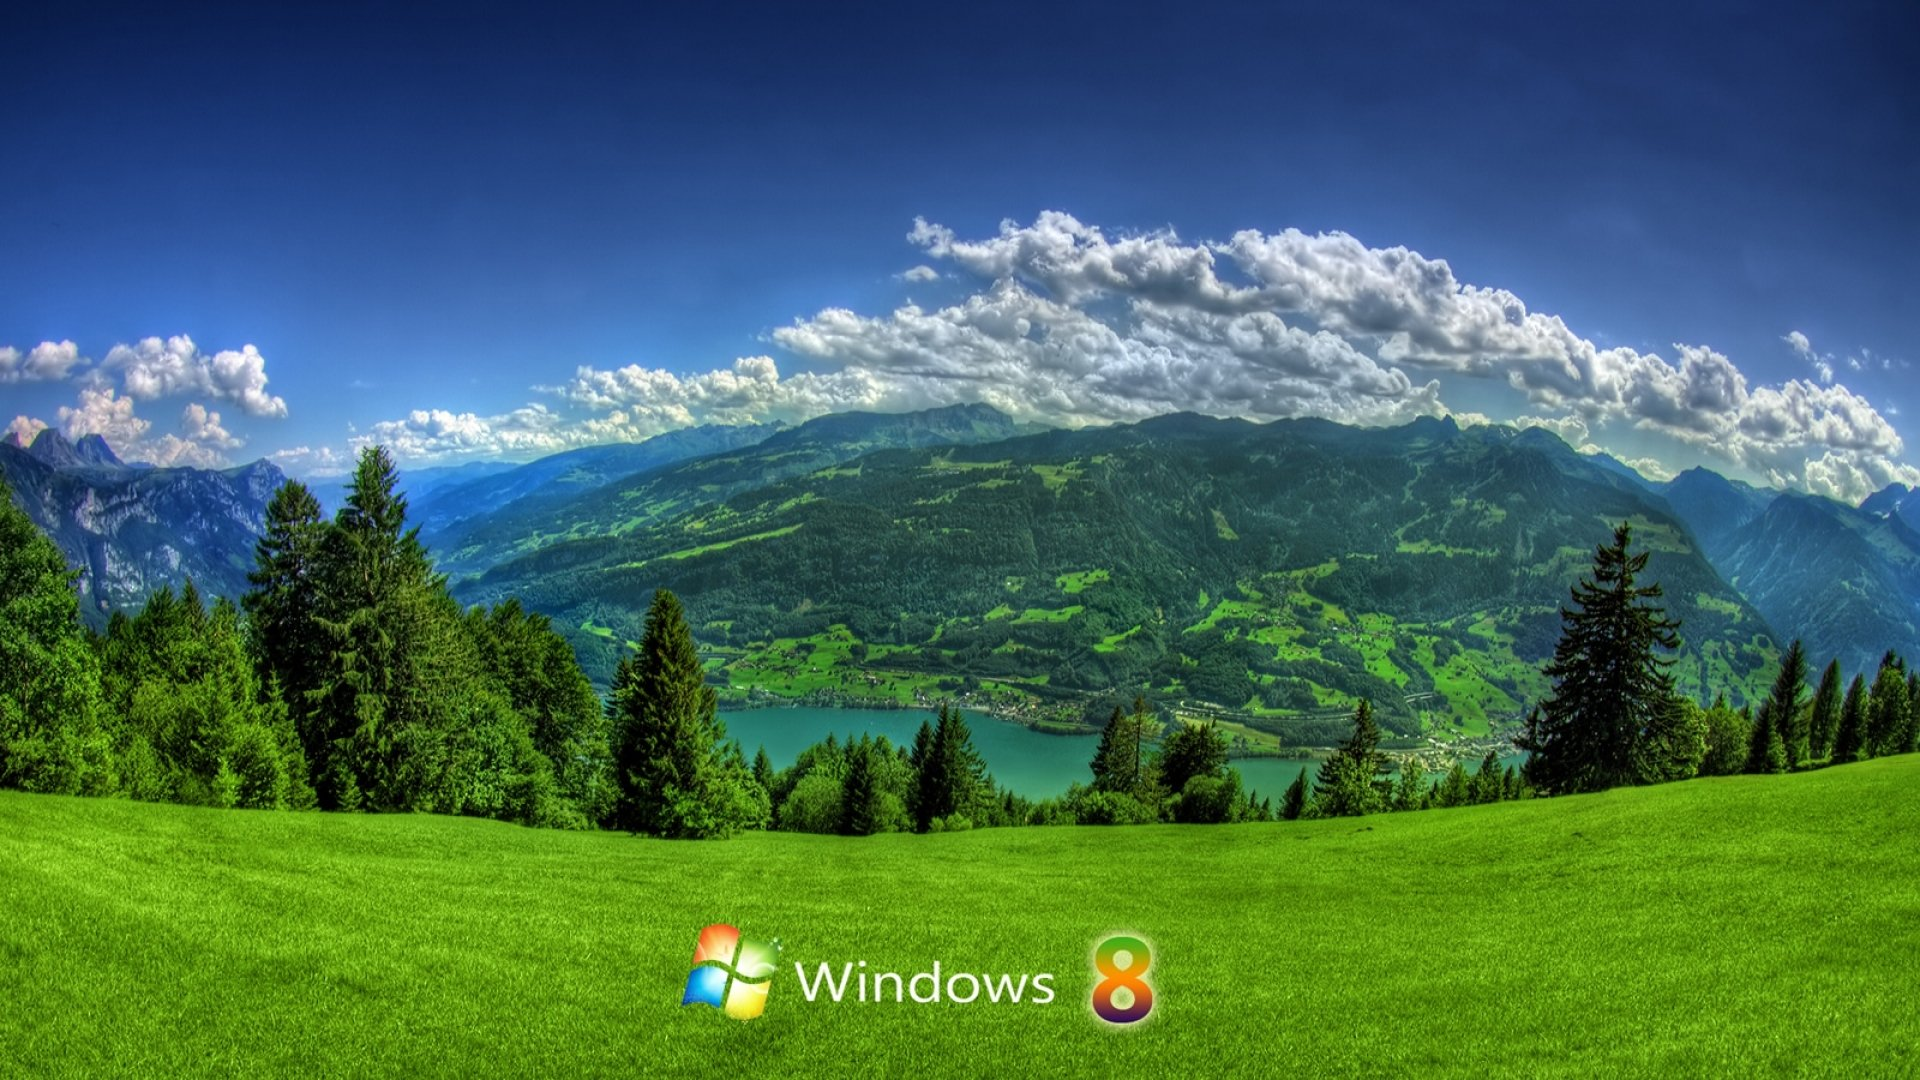 164 windows 8 hd wallpapers background images wallpaper abyss